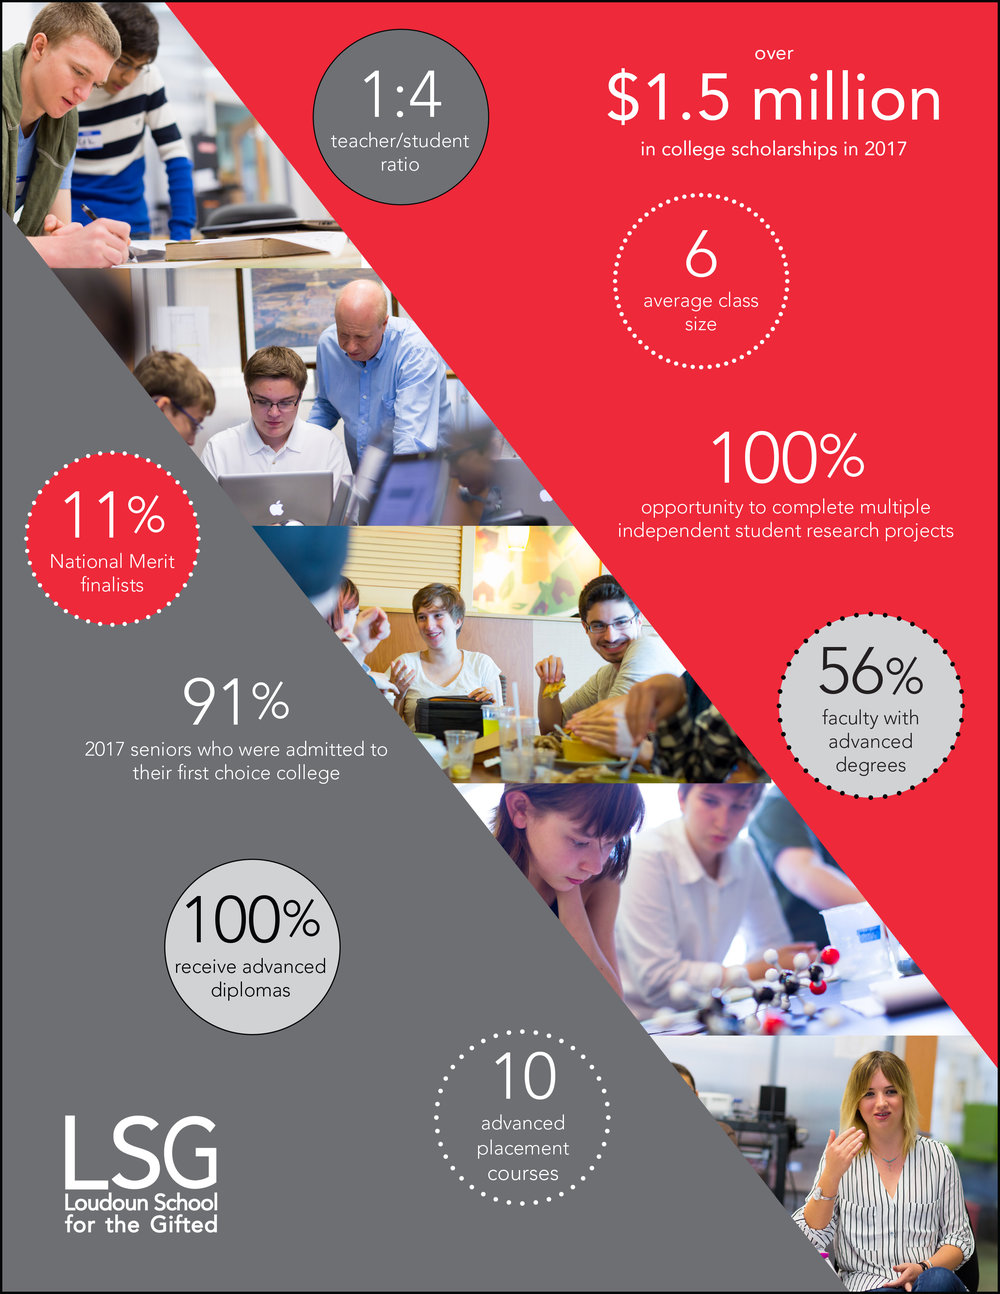 LSG at a Glance